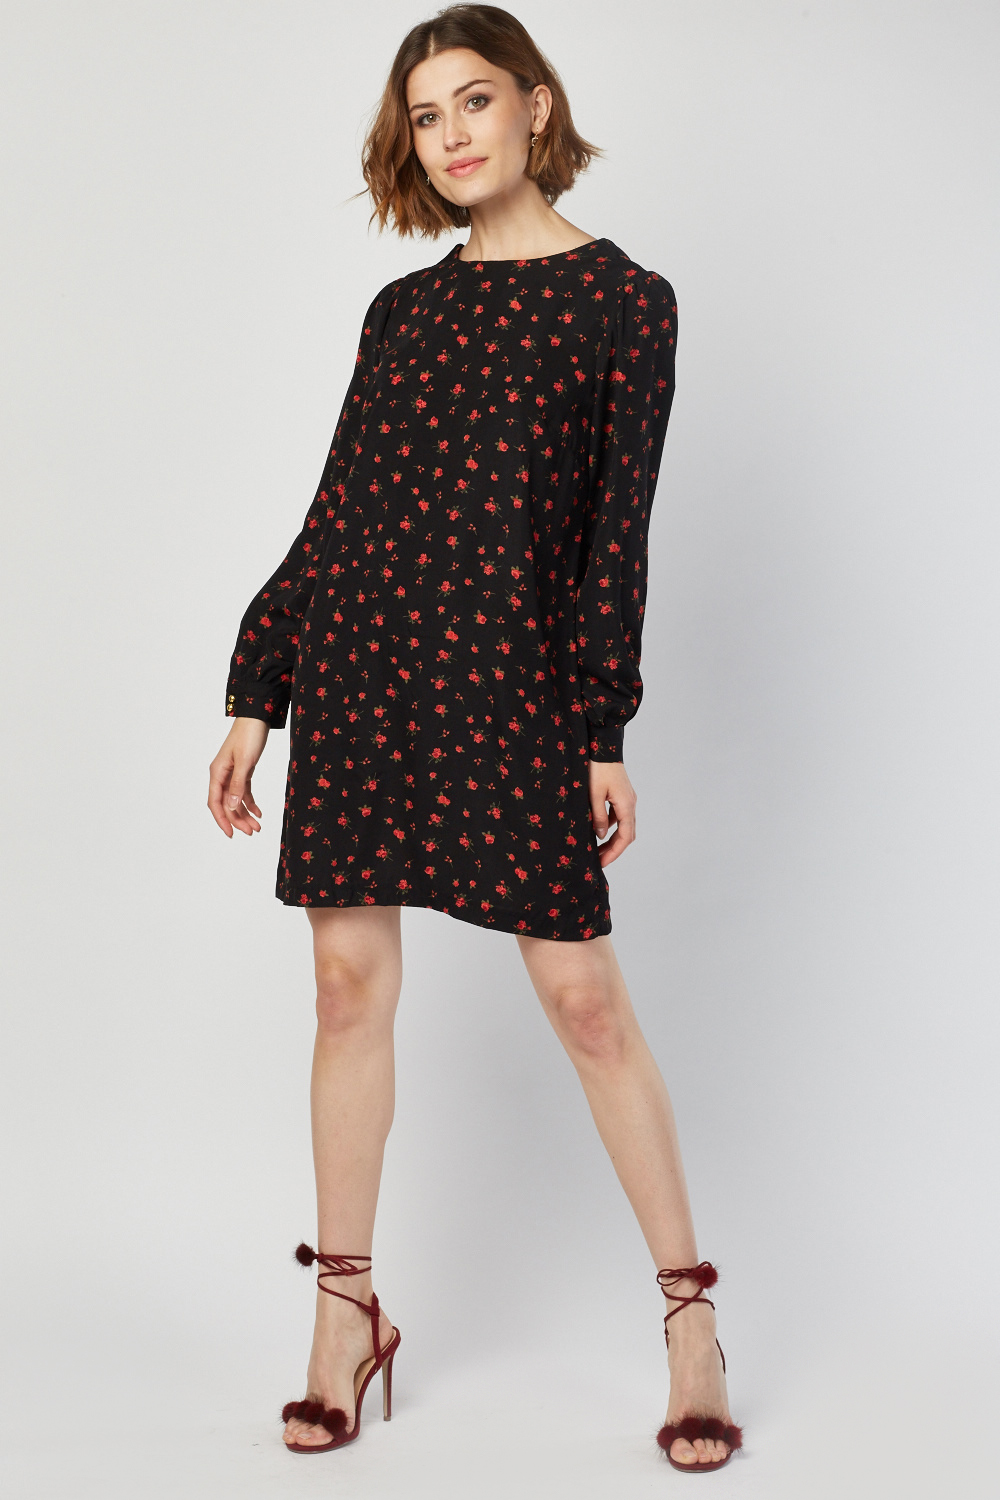 Long Sleeve Printed Shift Dress Black Multi Just 163 5